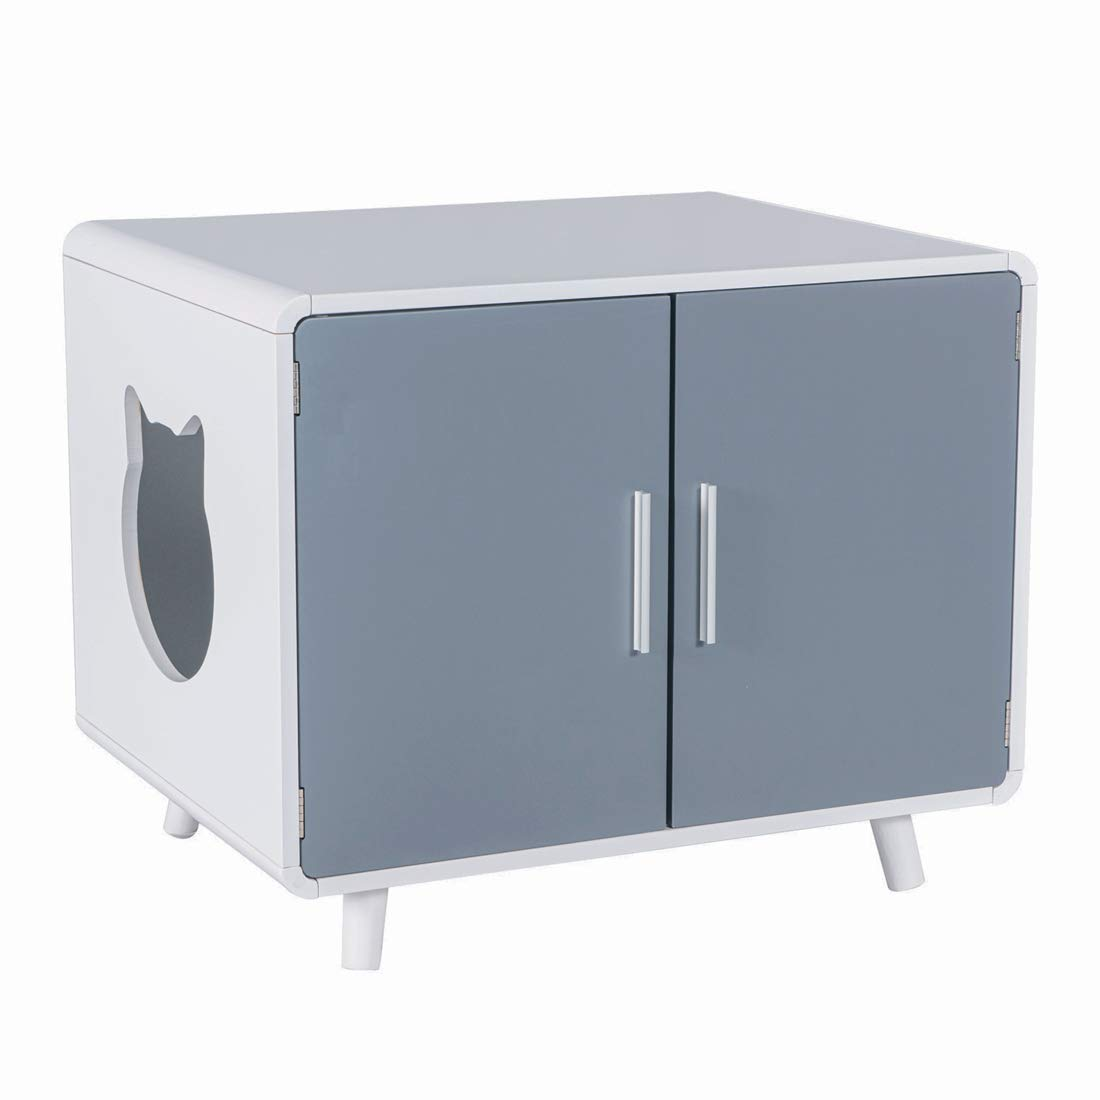 Good Life Safe Furniture Style Cat Kitty Litter Box Covered Crate with Storage - Large Wooden Pet House with Table Nightstand - for Washroom or Pet Bed - Home Designer Look (Grey & White) by GOOD LIFE USA